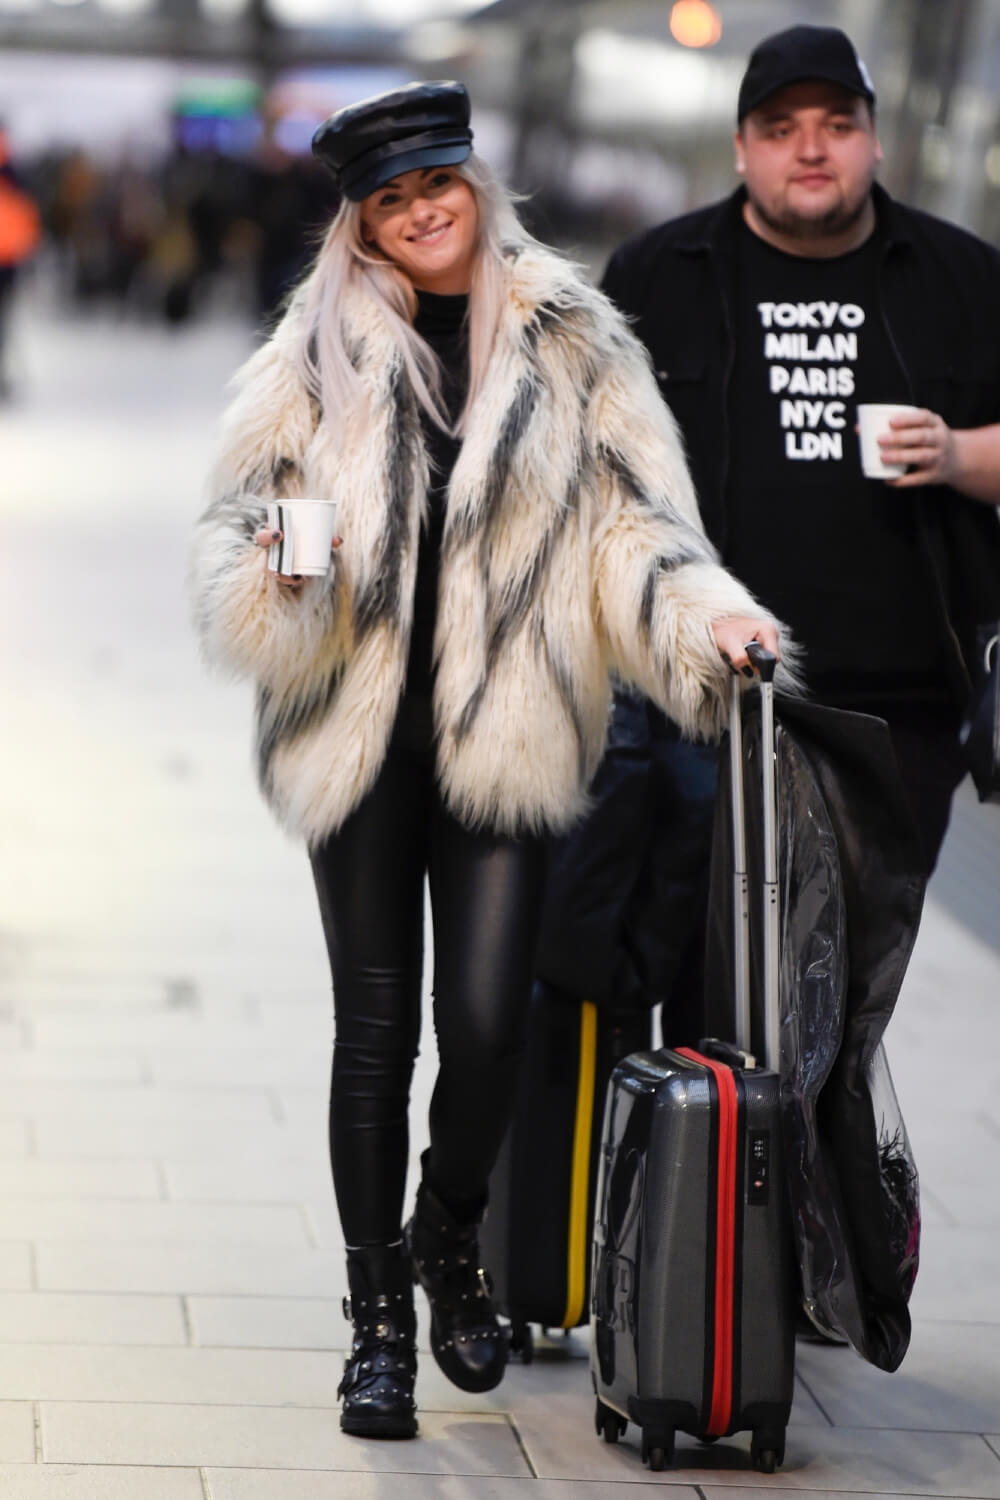 Katie McGlynn see catching an early morning train